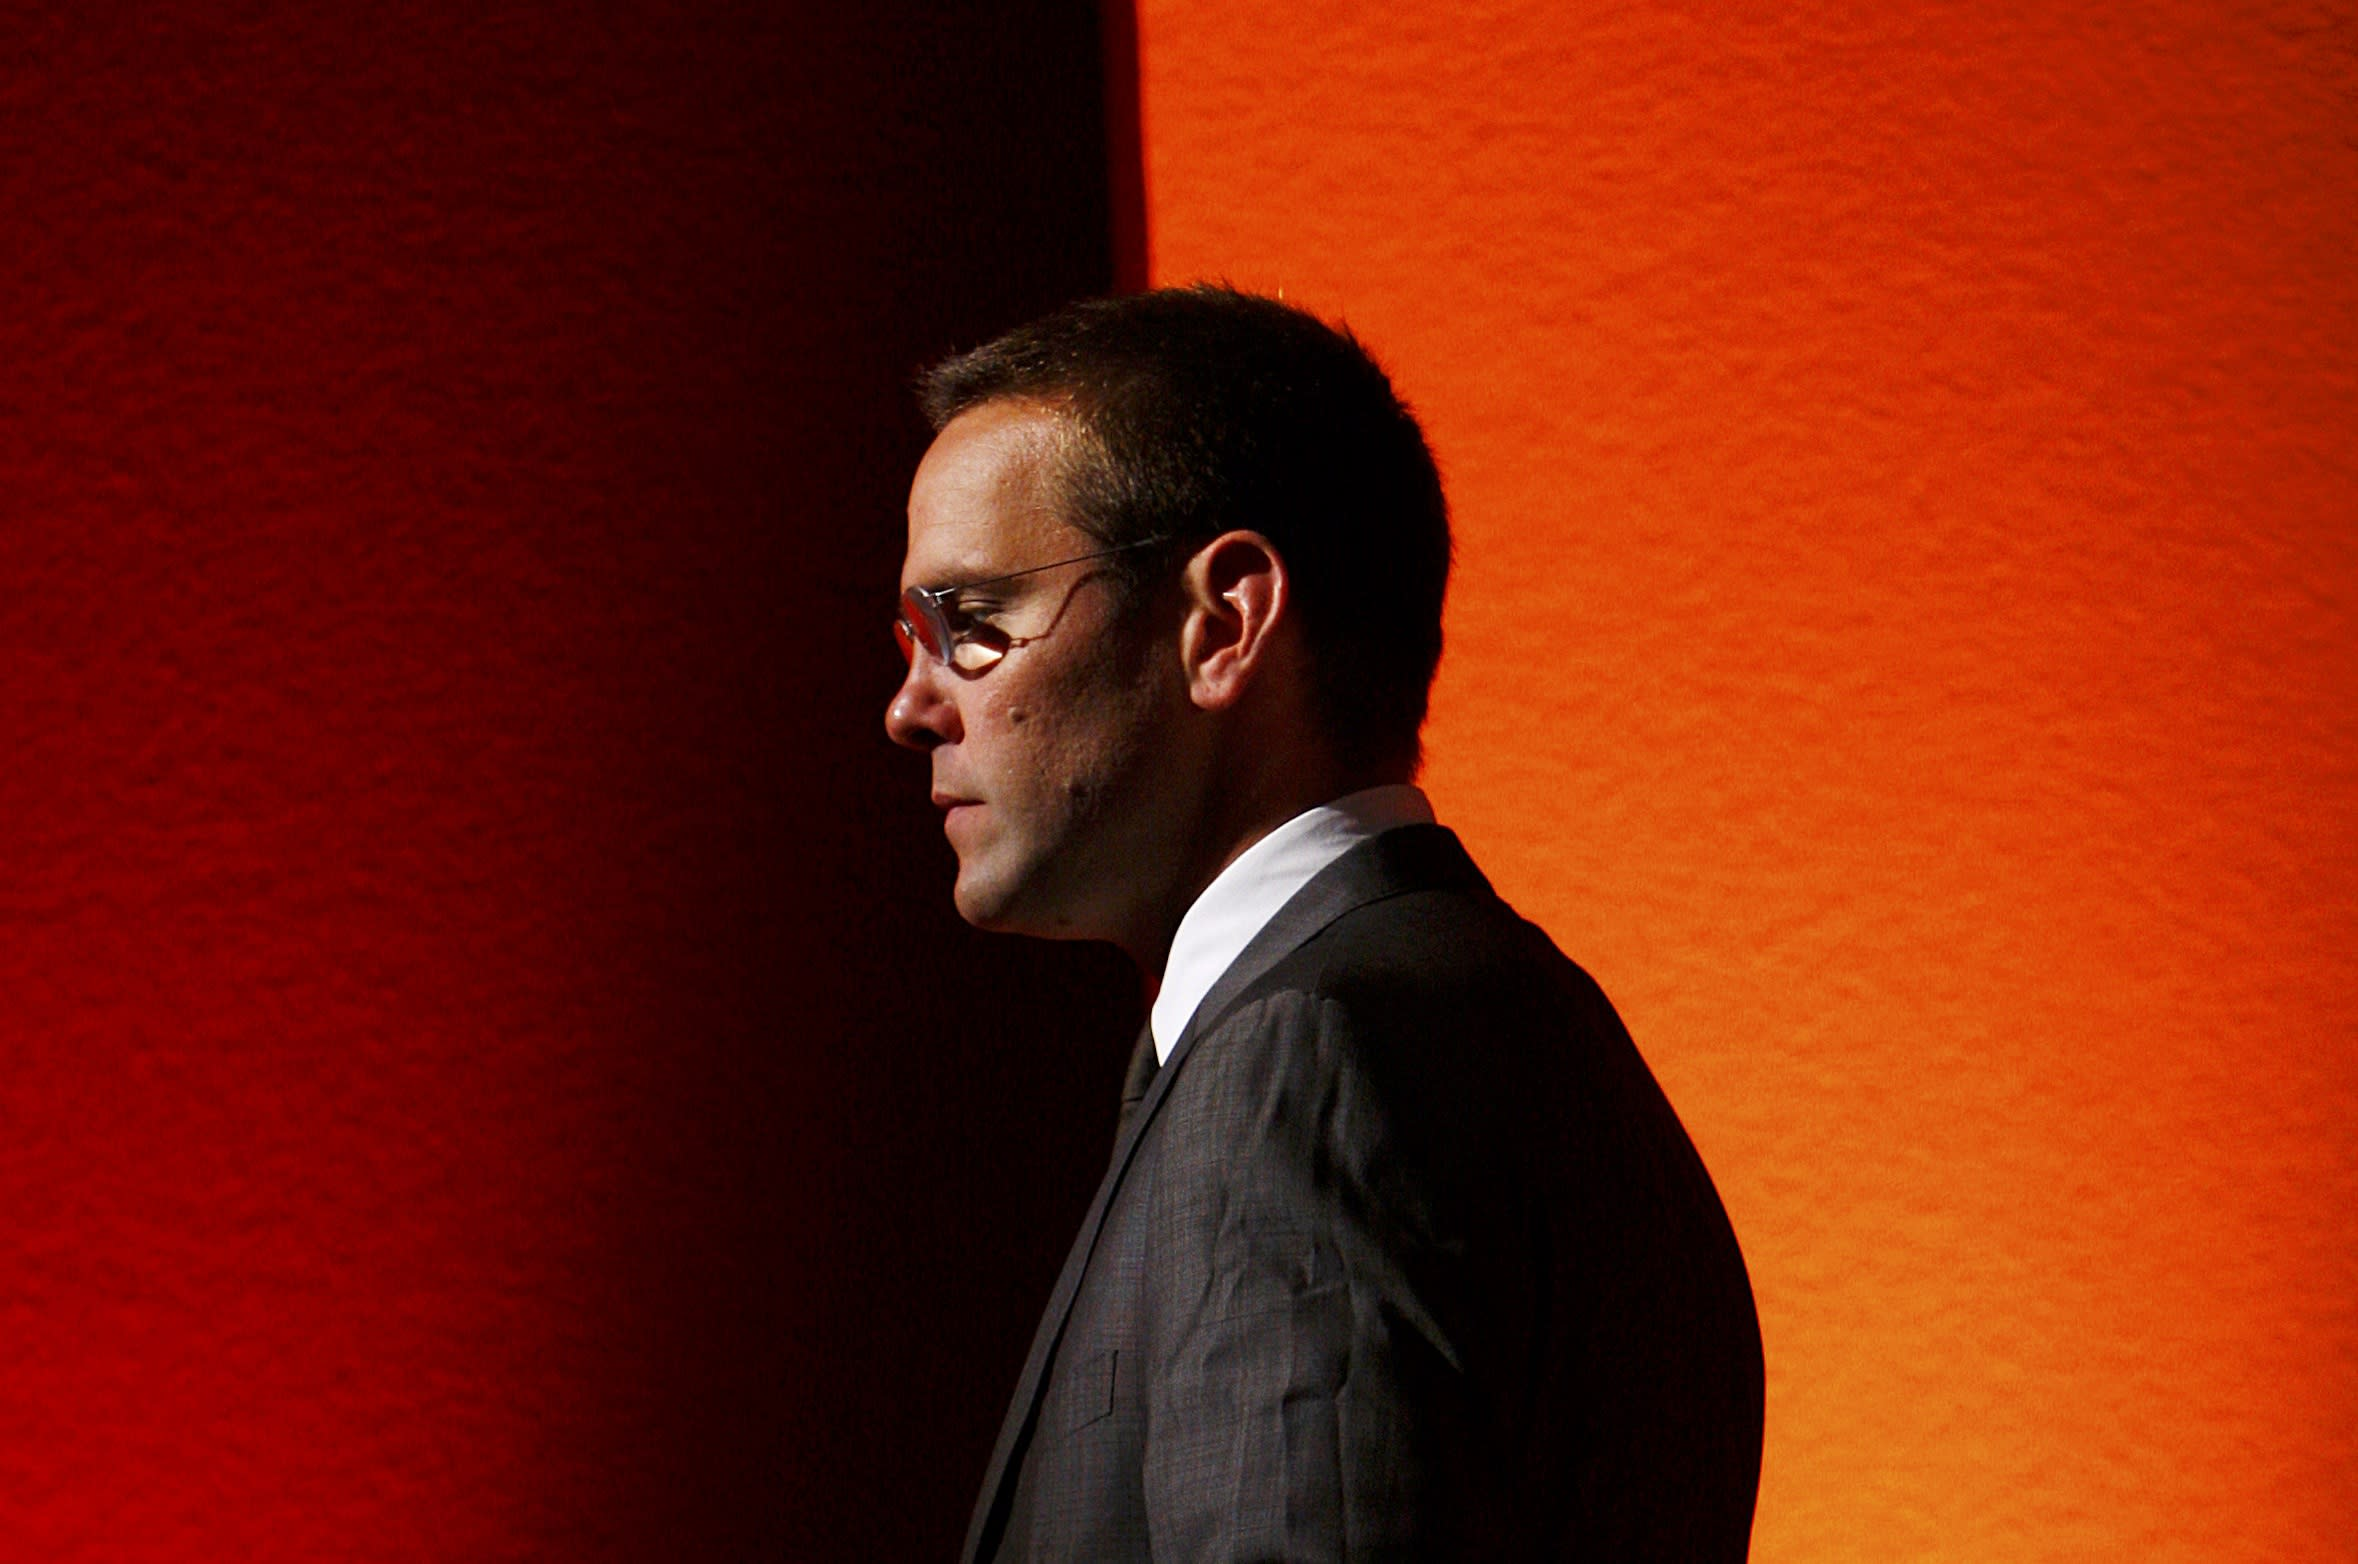 James Murdoch donates $1 million to the Anti-Defamation League following events in Charlottesville